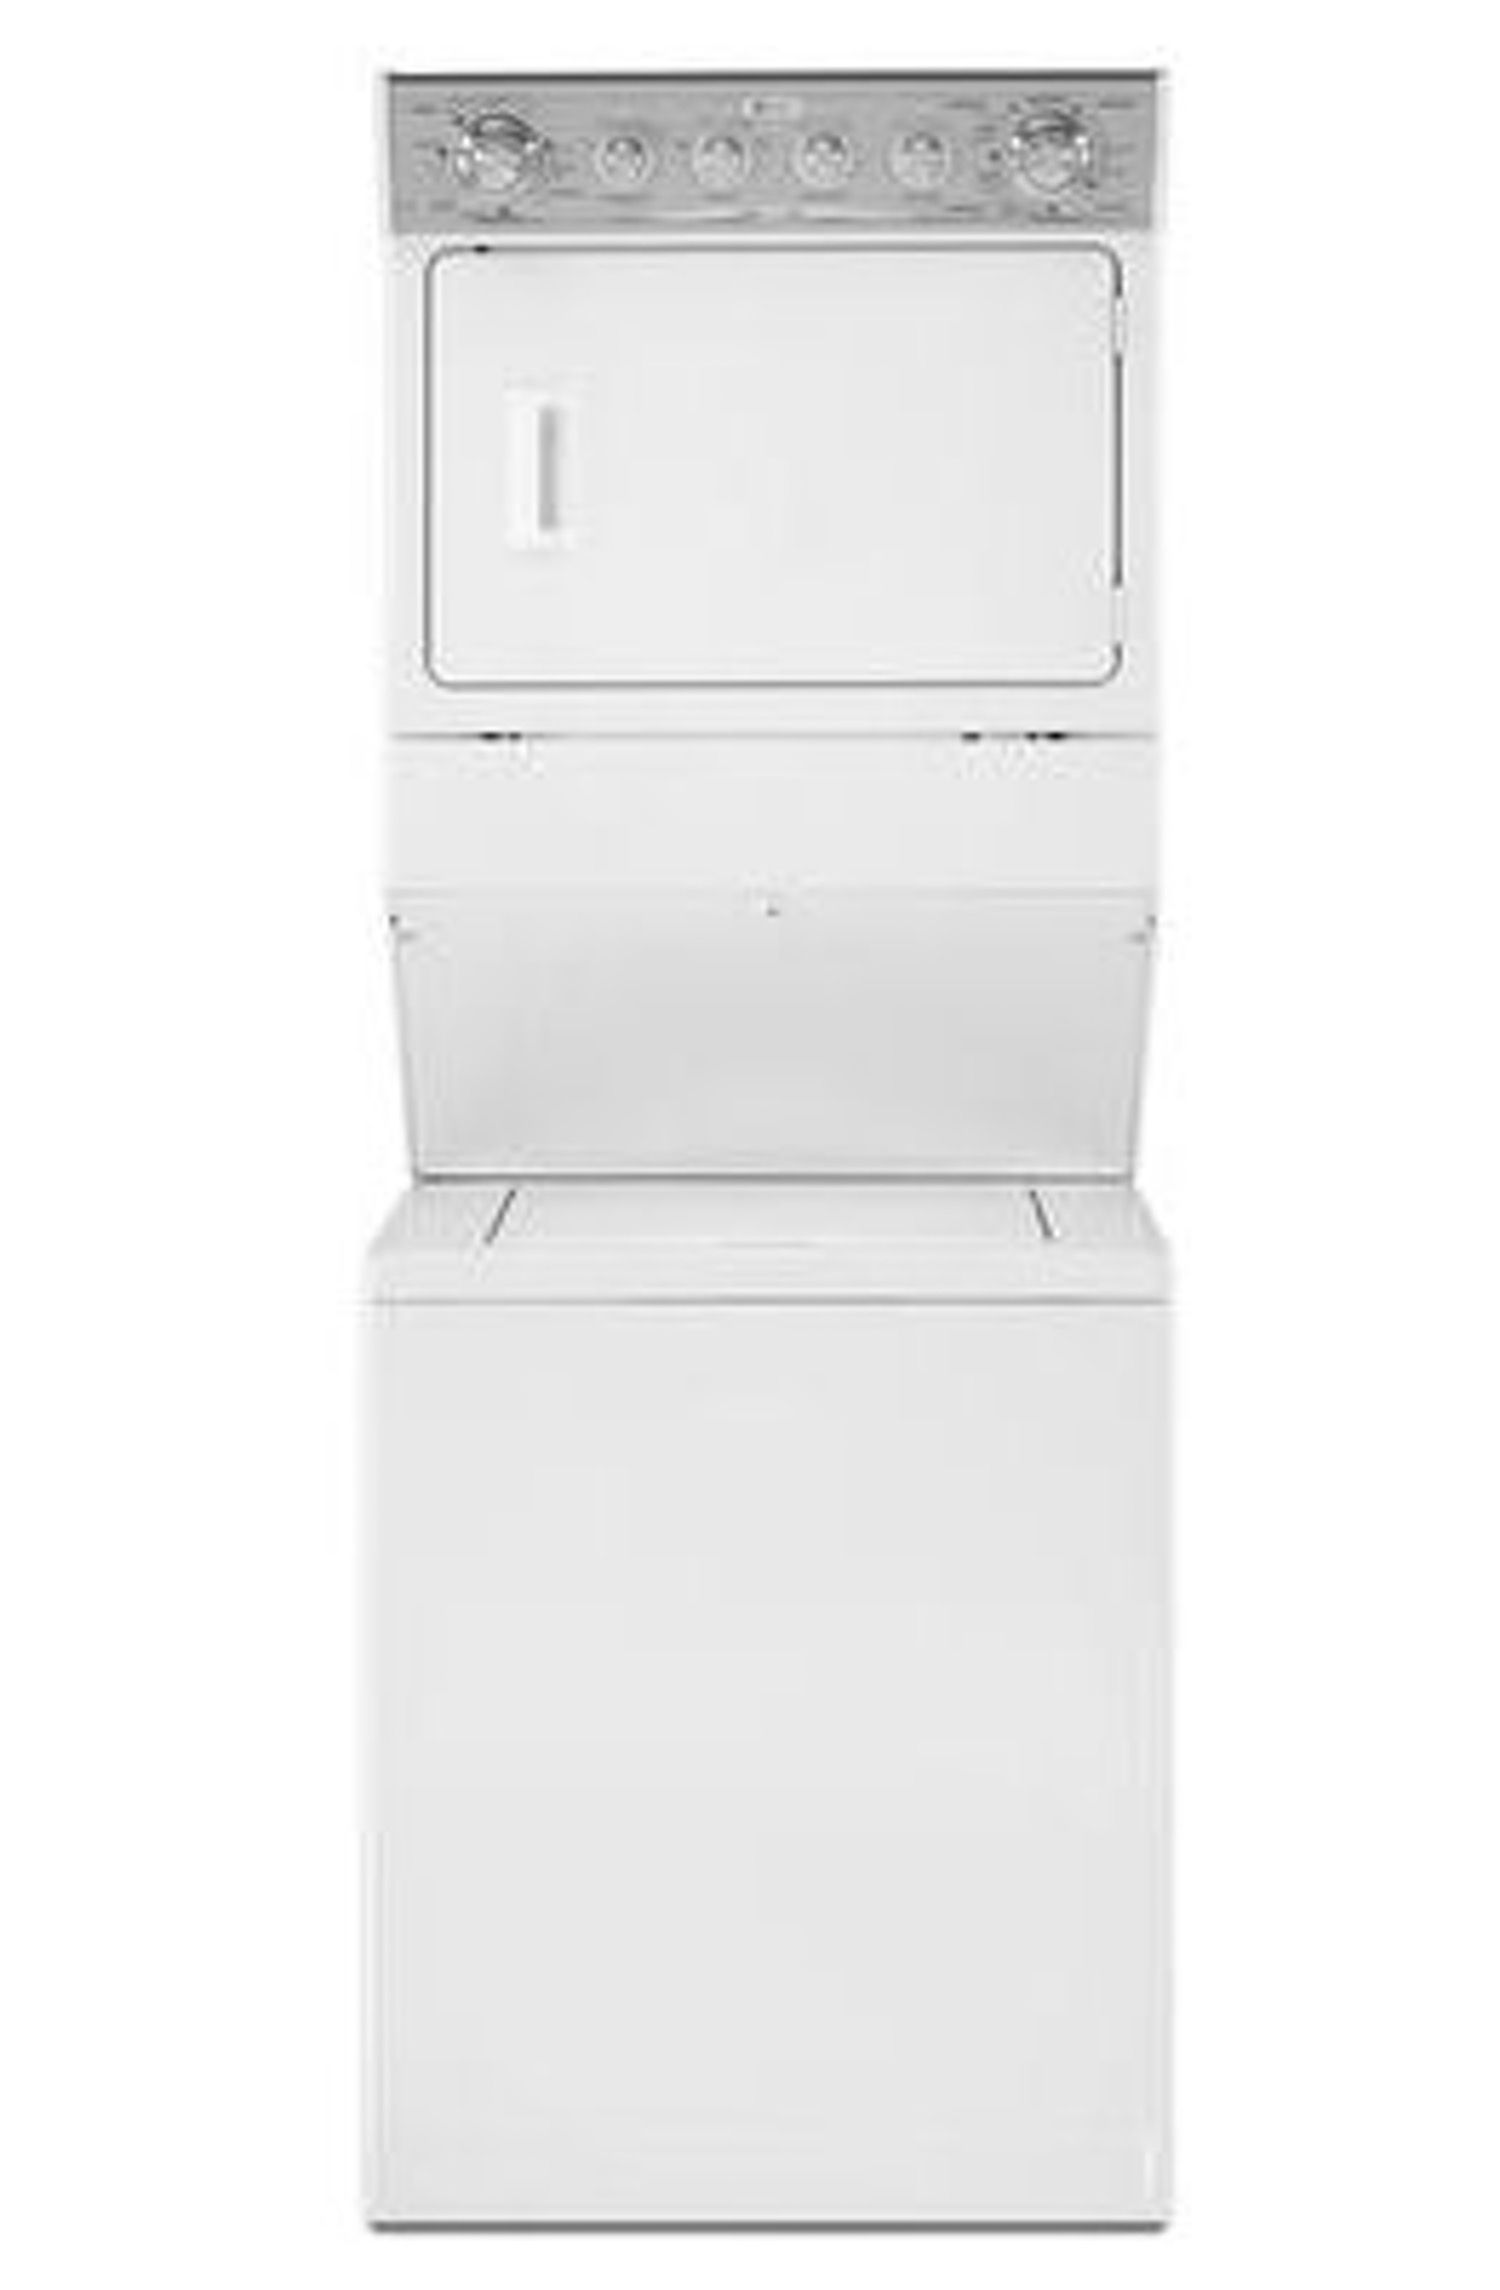 Good Questions Weather Proofing Outdoor Washer And Dryer Laundry Room Storage Shelves Laundry Room Laundry Room Storage